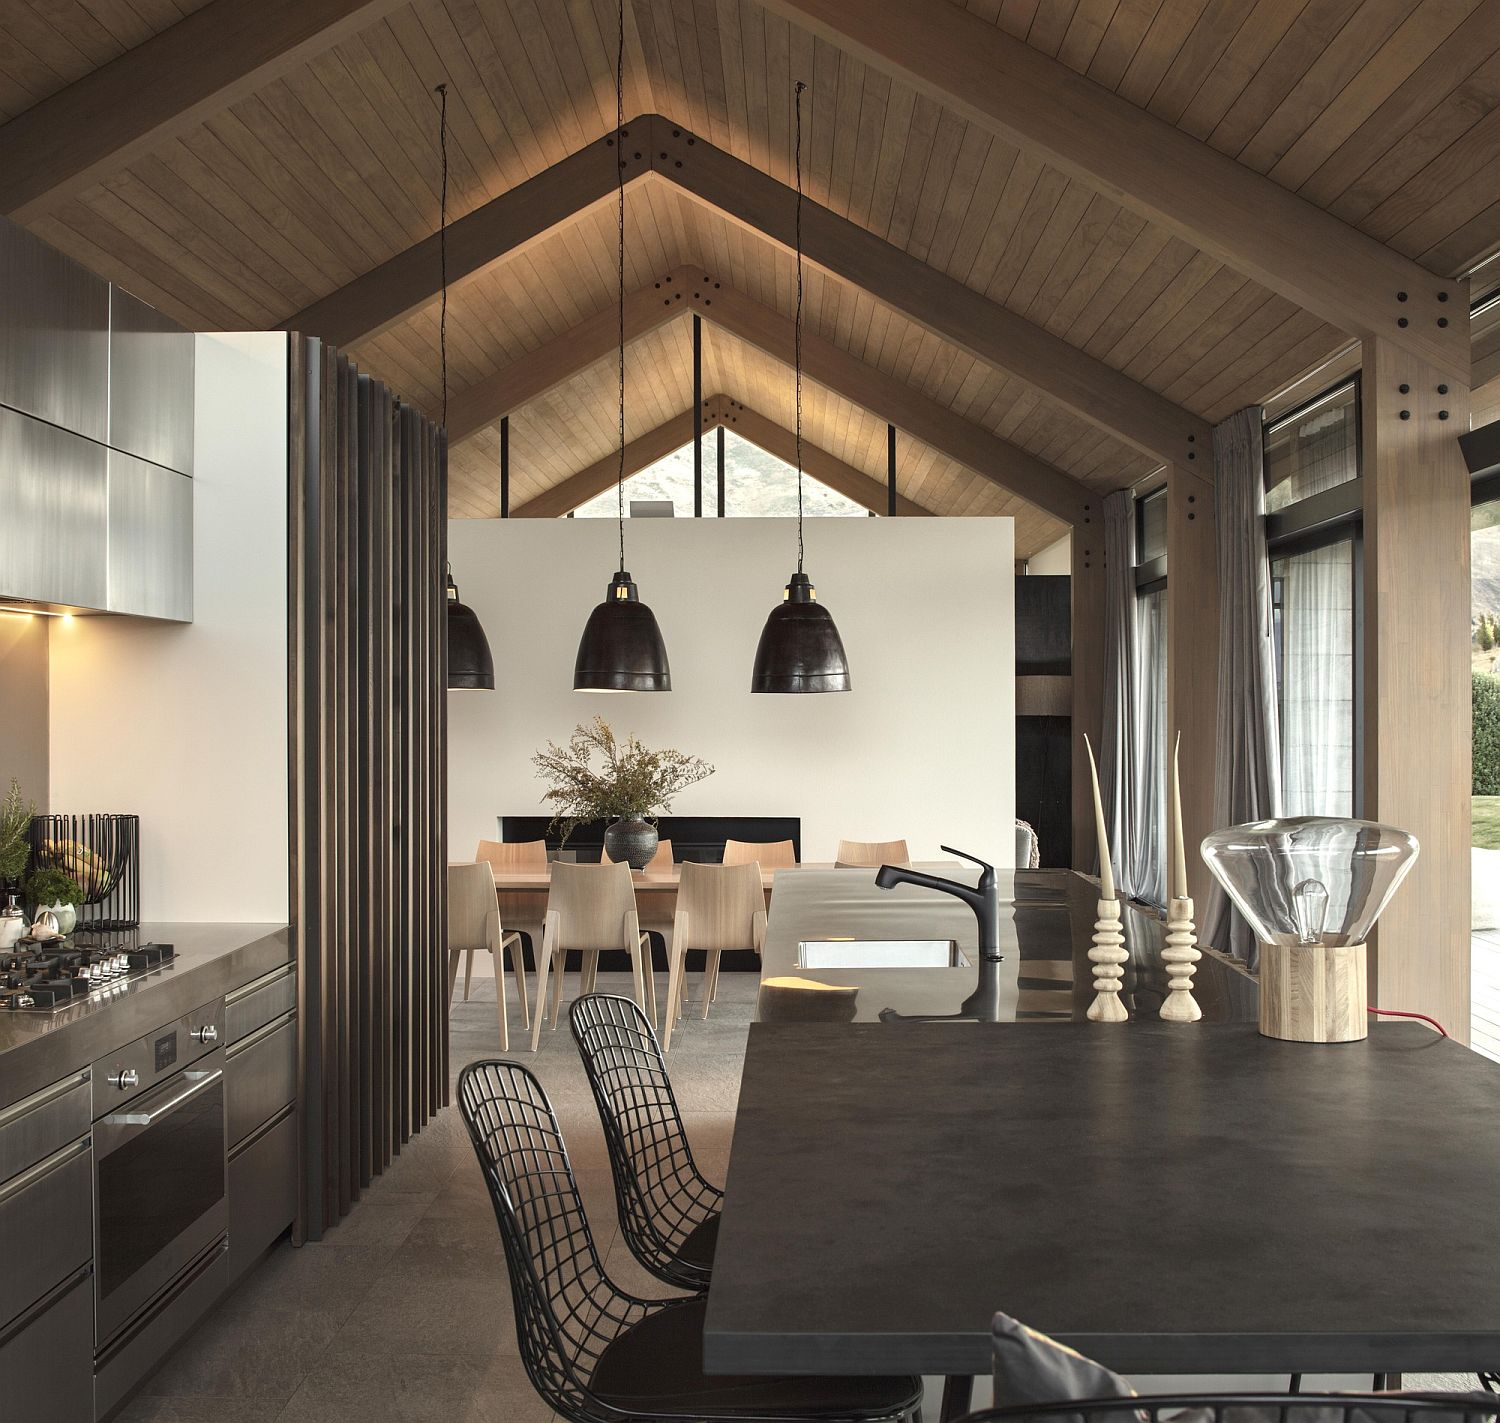 Oversized pendants in black accentuate the gabled roof of the house